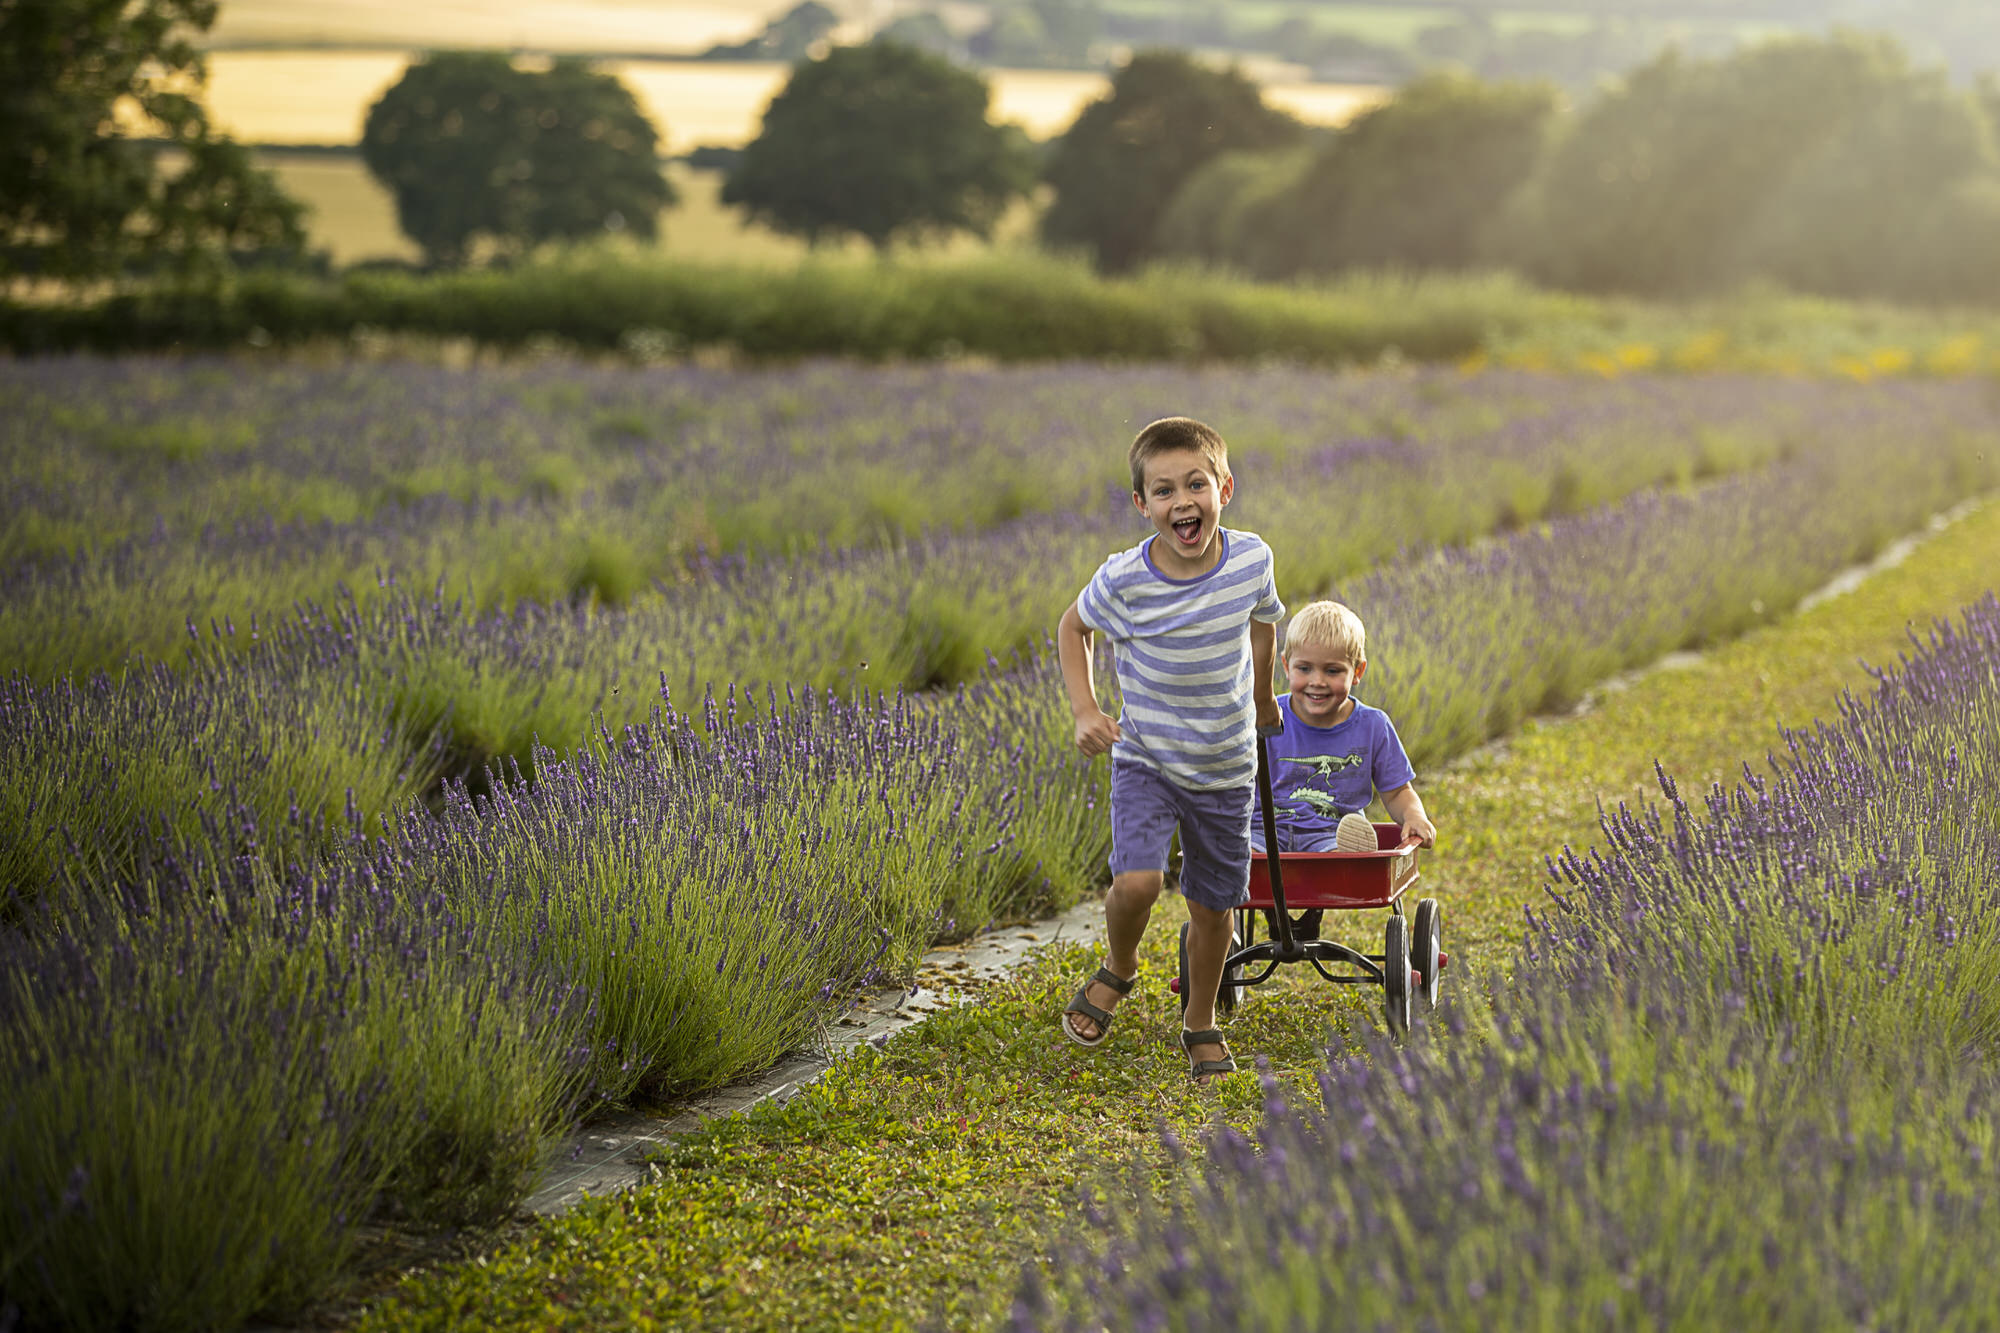 Child and Family Outdoor Photography this made a lovely portrait, taken by an Outdoor Photographer, family photos, Photographer Whitchurch Hampshire